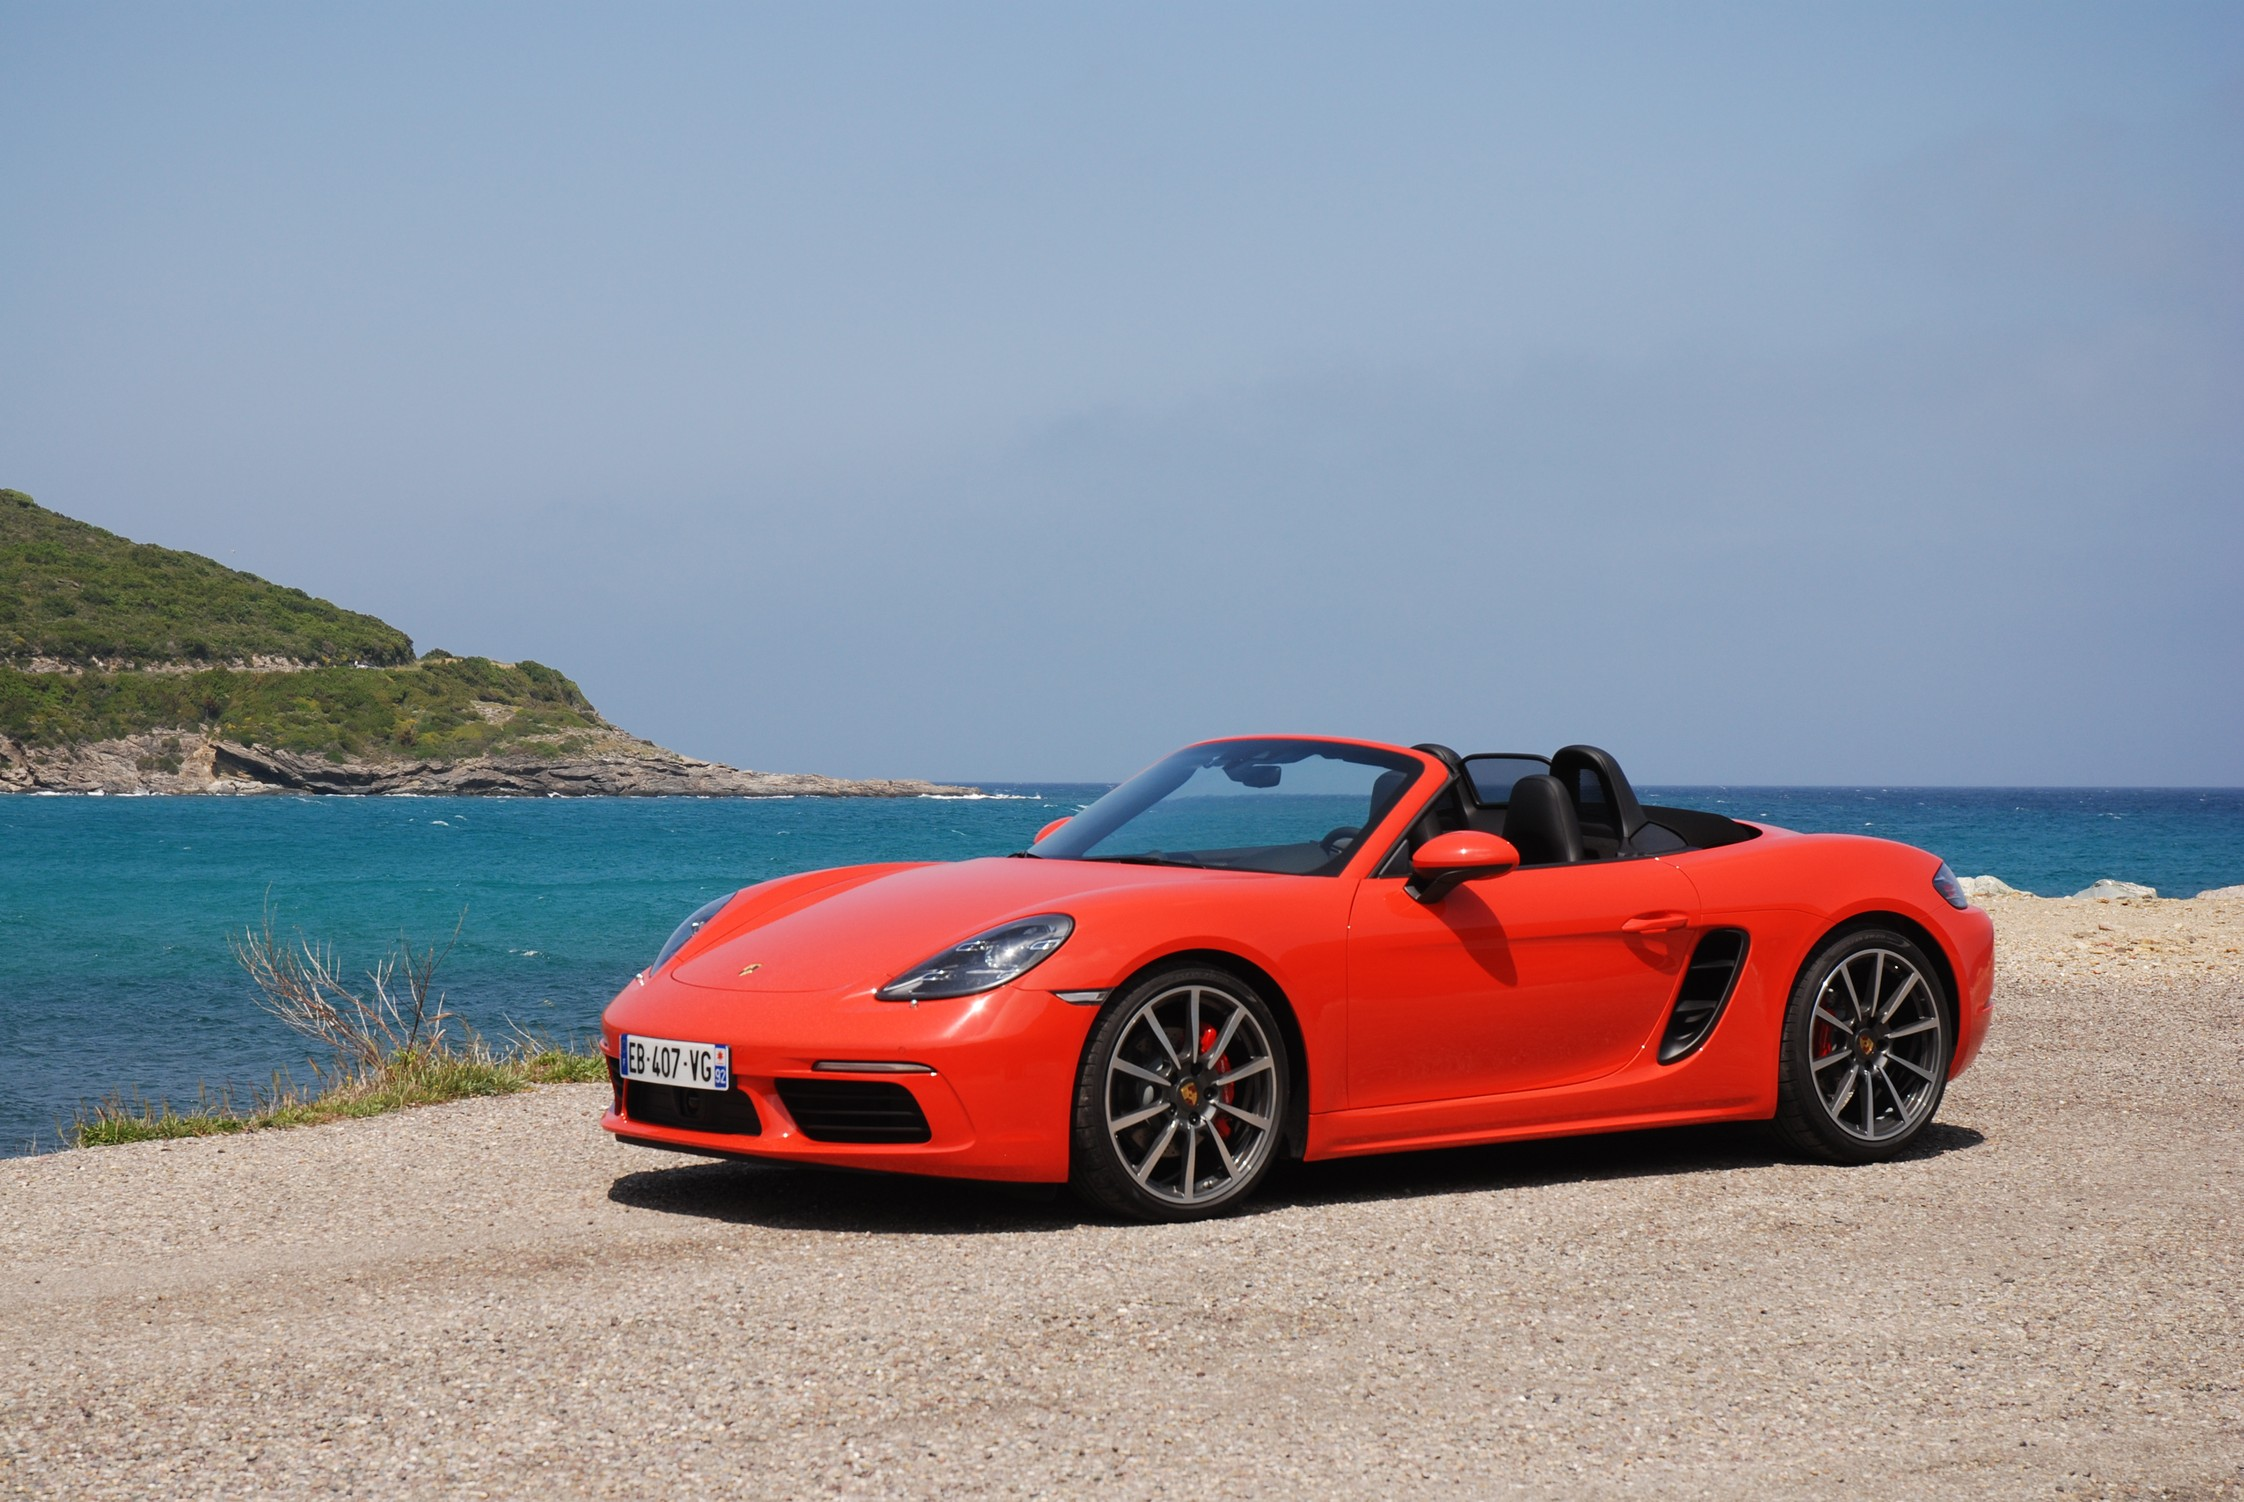 essai porsche 718 boxster s pdk motorlegend. Black Bedroom Furniture Sets. Home Design Ideas